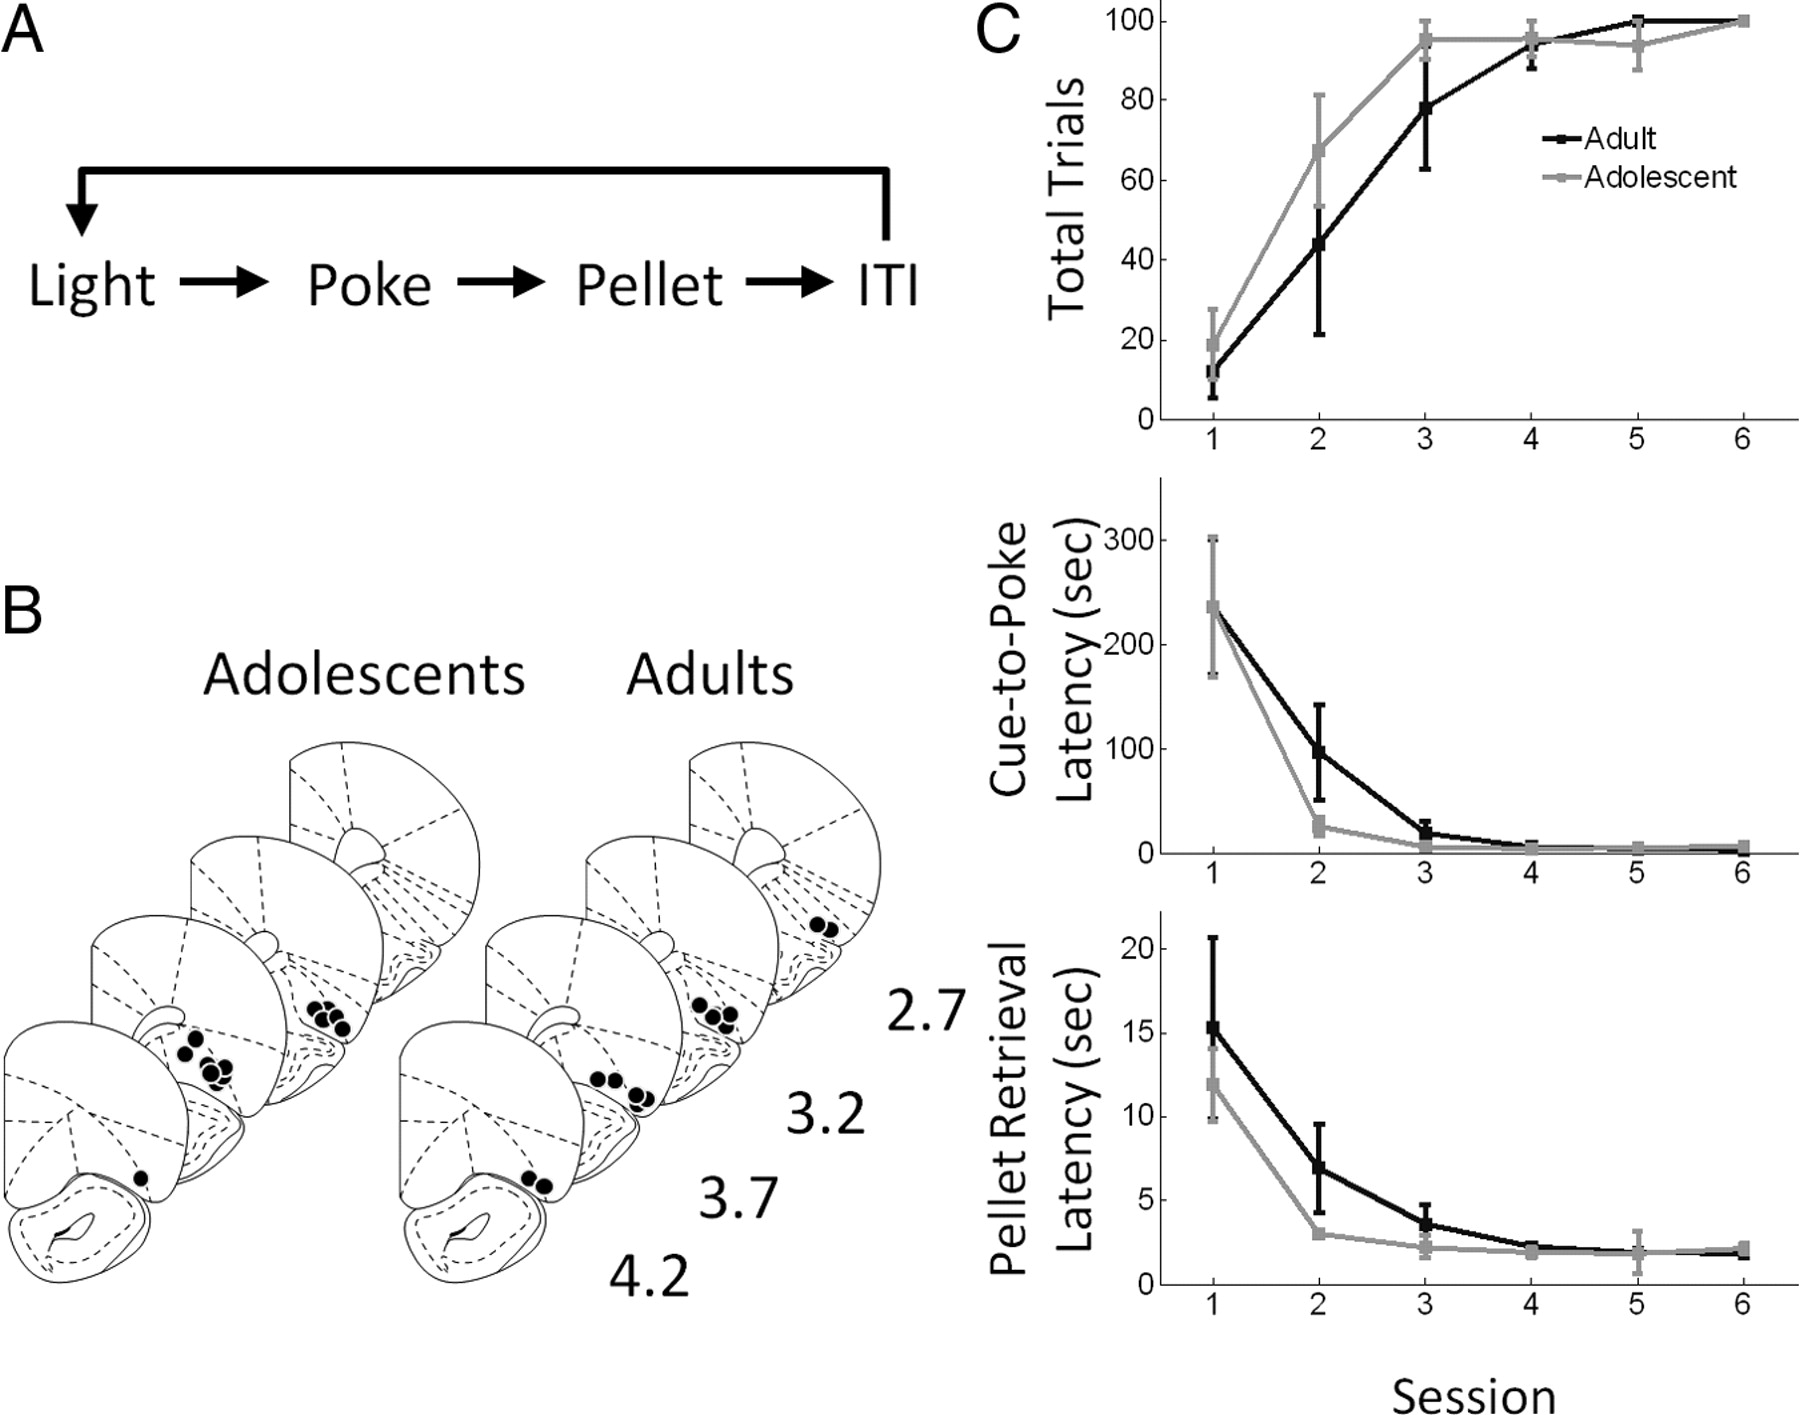 reduced neuronal inhibition and coordination of adolescent Singer Machine Model Numbers download figure